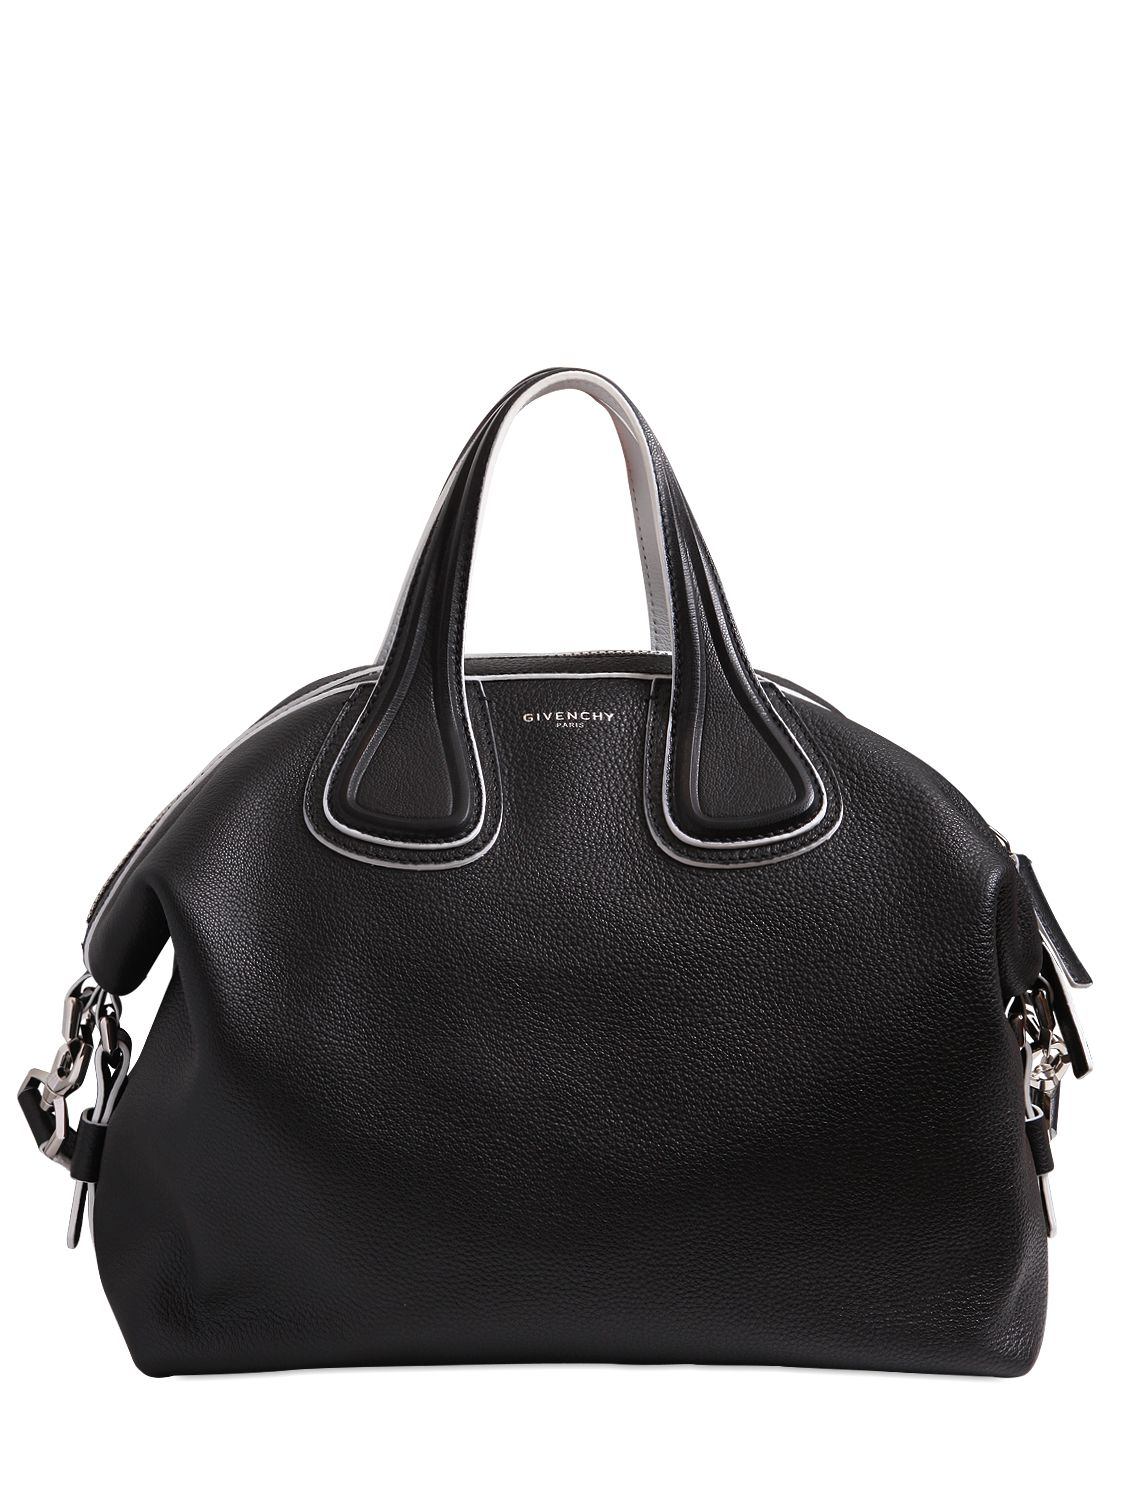 6167f2763783 Givenchy Bags. Givenchy Medium Nightingale Bag W  White Details in Black  (BLACK .